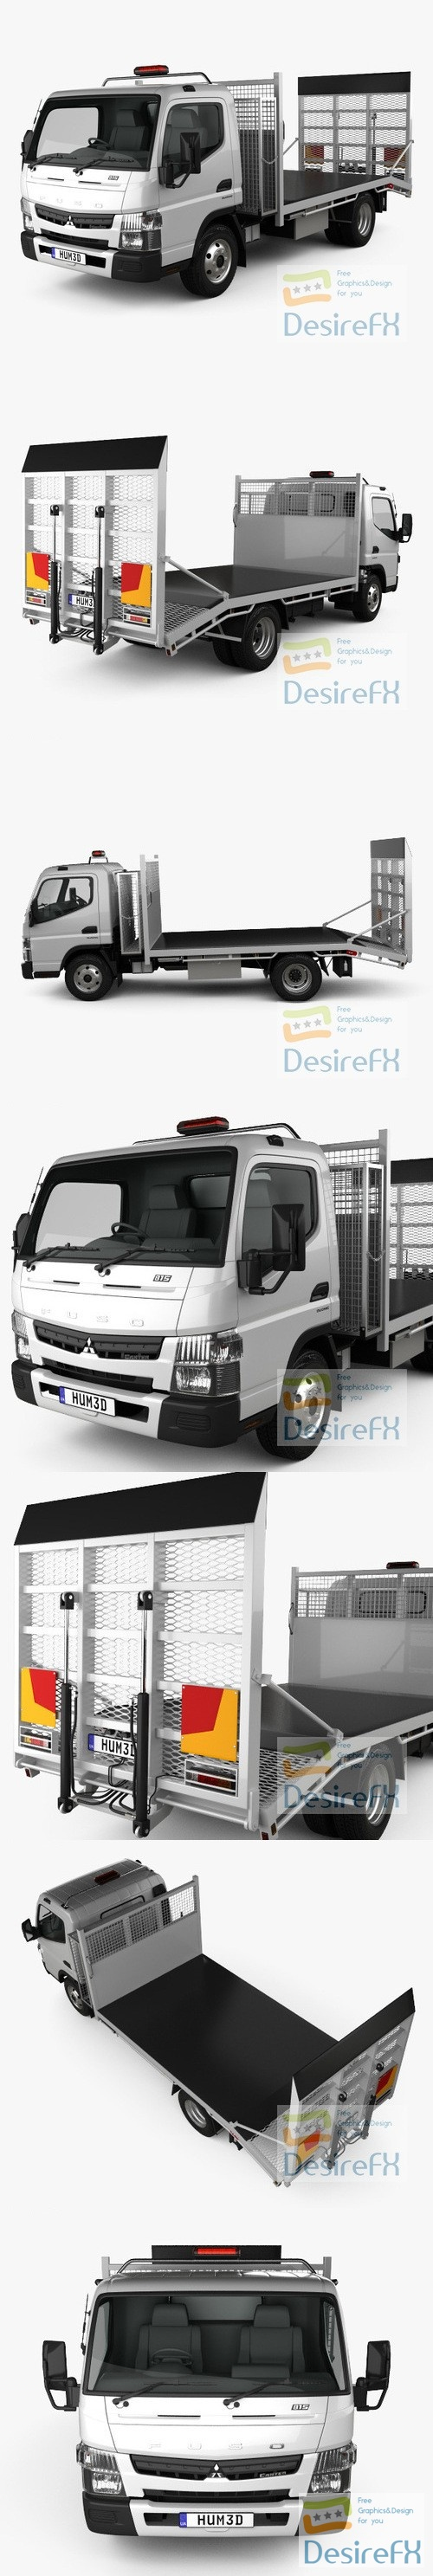 Mitsubishi Fuso Canter Wide Single Cab Tilt Tray Beaver Tail Truck 2016 3D Model